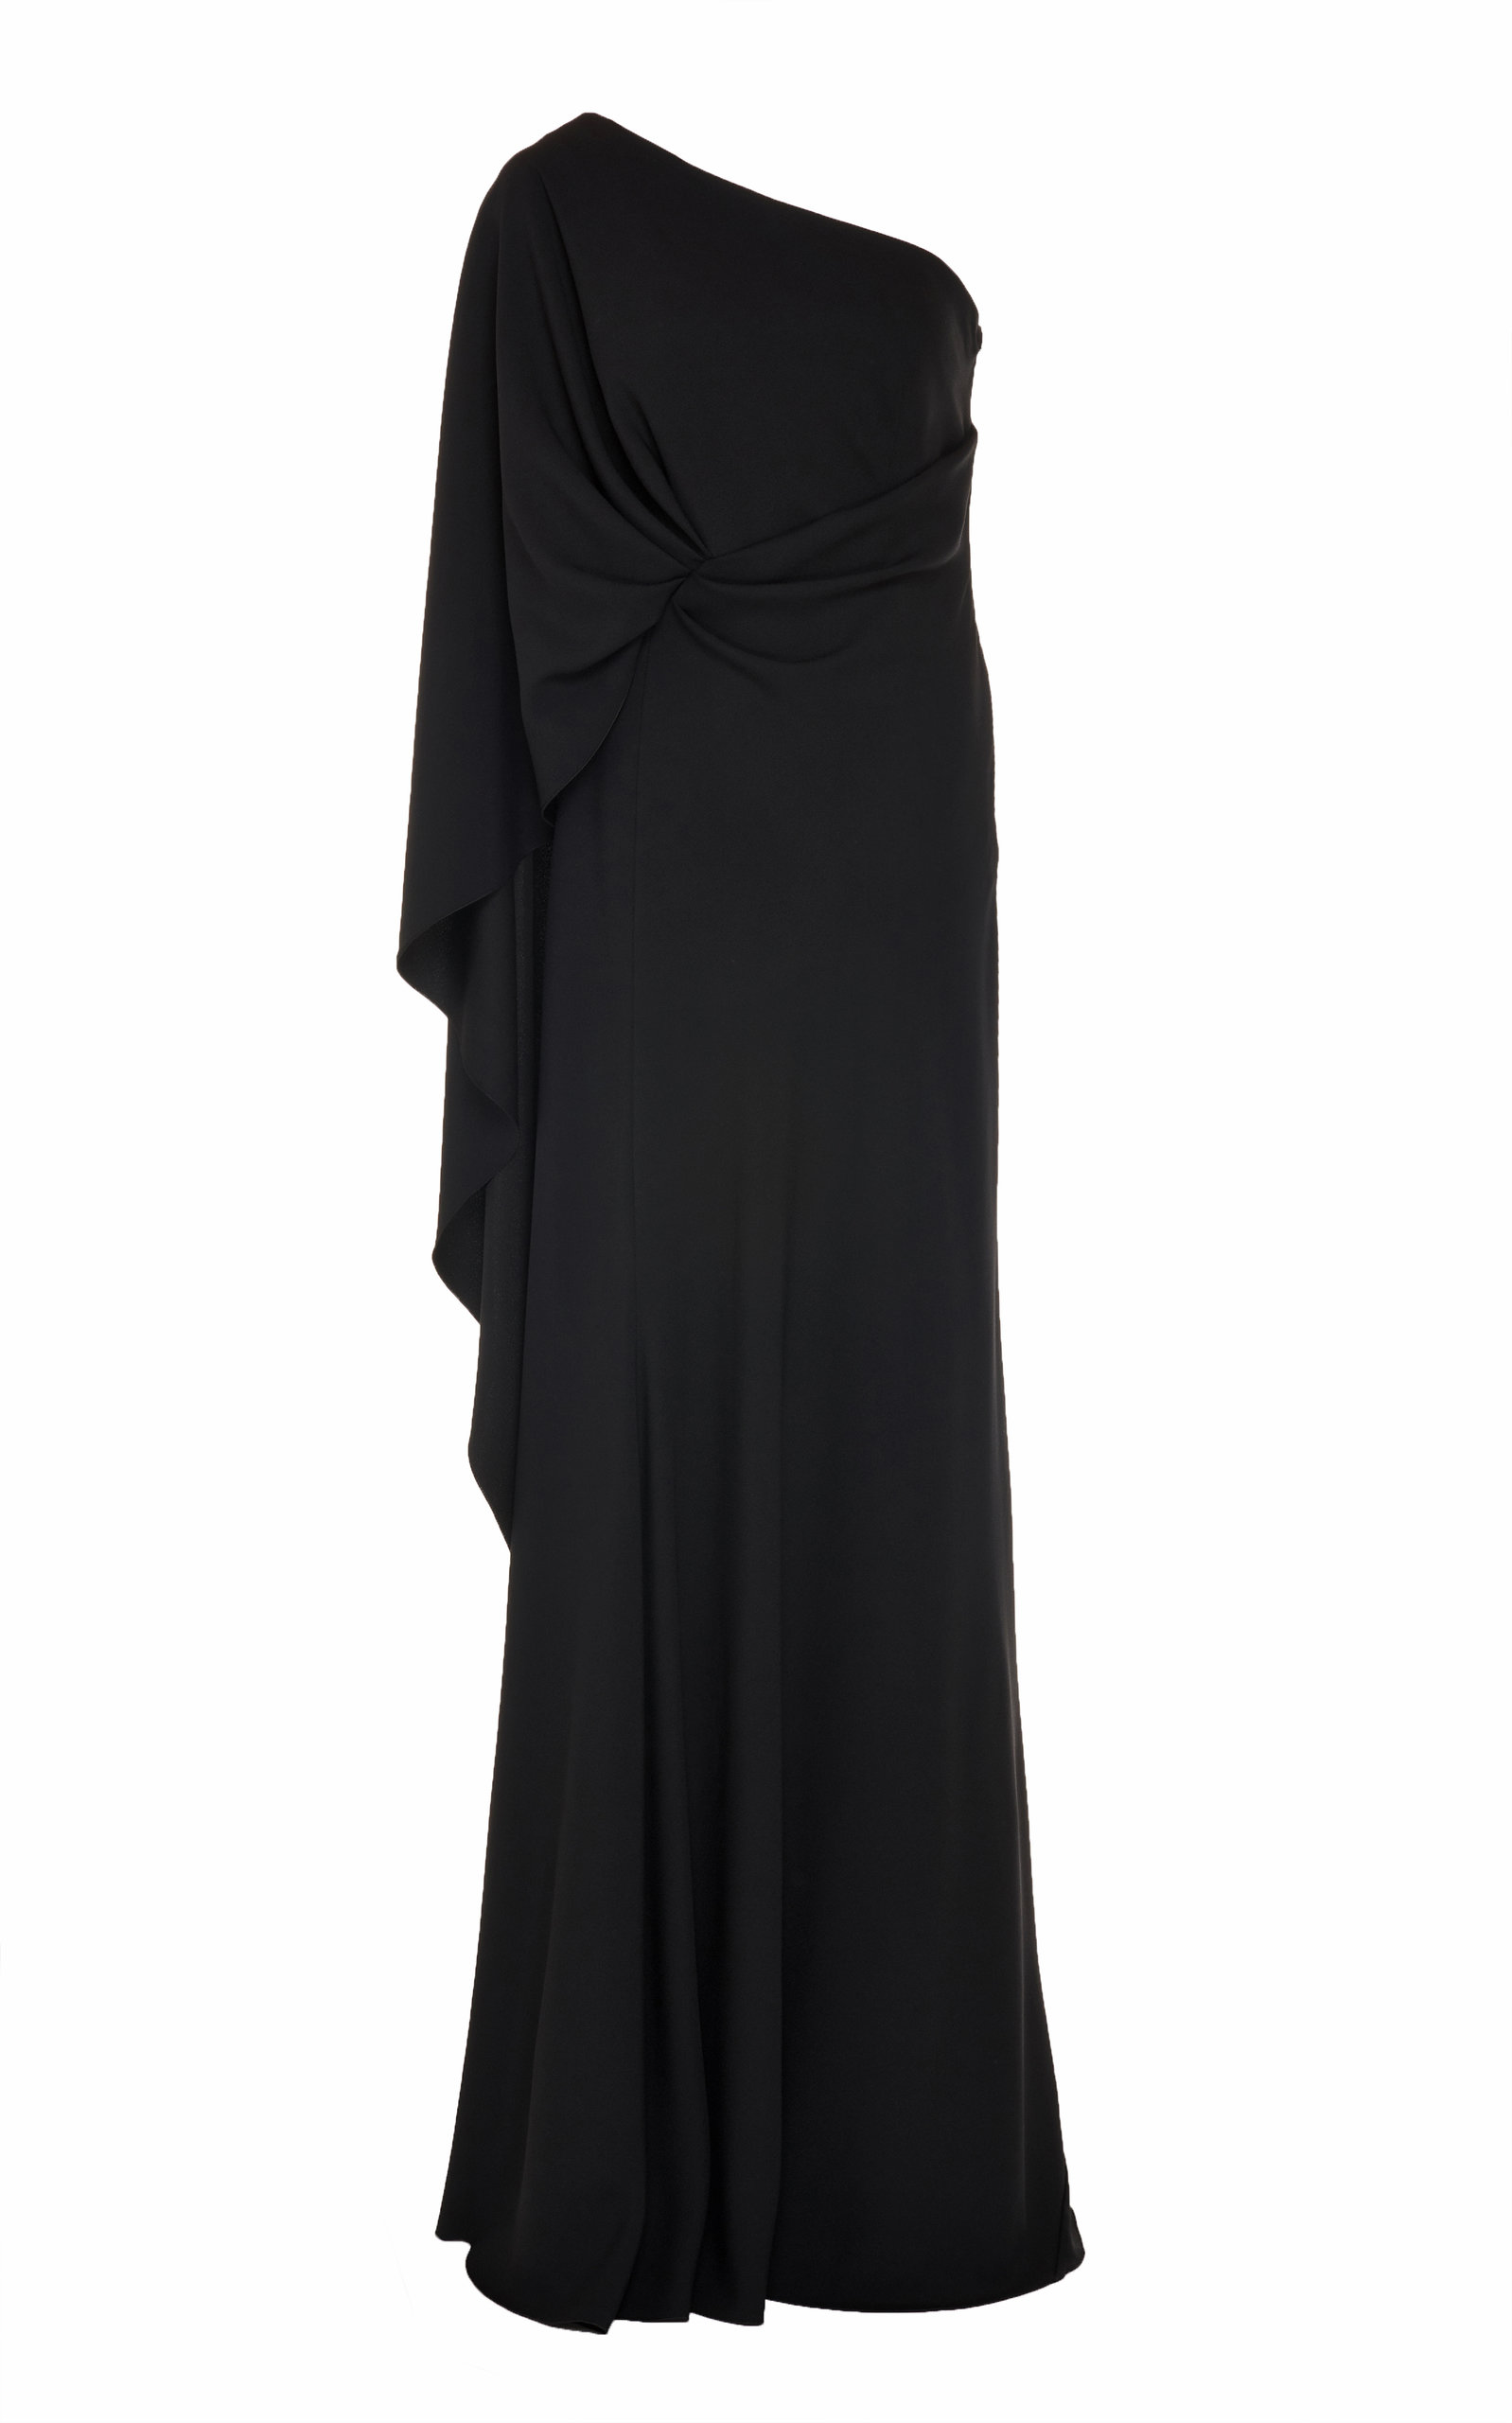 Buy Alberta Ferretti One-Shoulder Knotted Satin-Effect Gown online, shop Alberta Ferretti at the best price